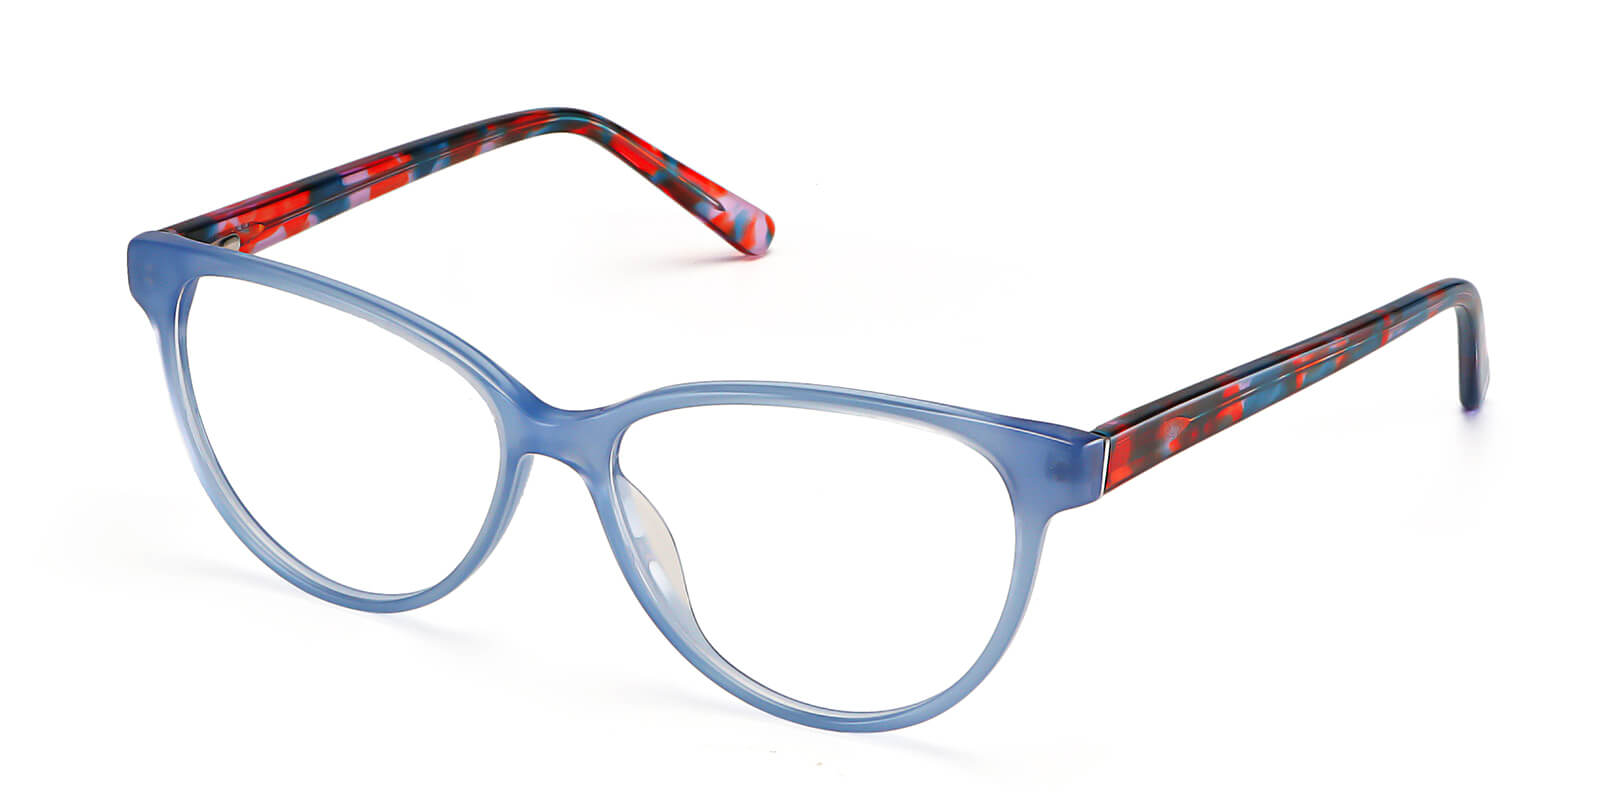 Lindsay-Cute cat eye glasses  for women  : bright multi-color opitons